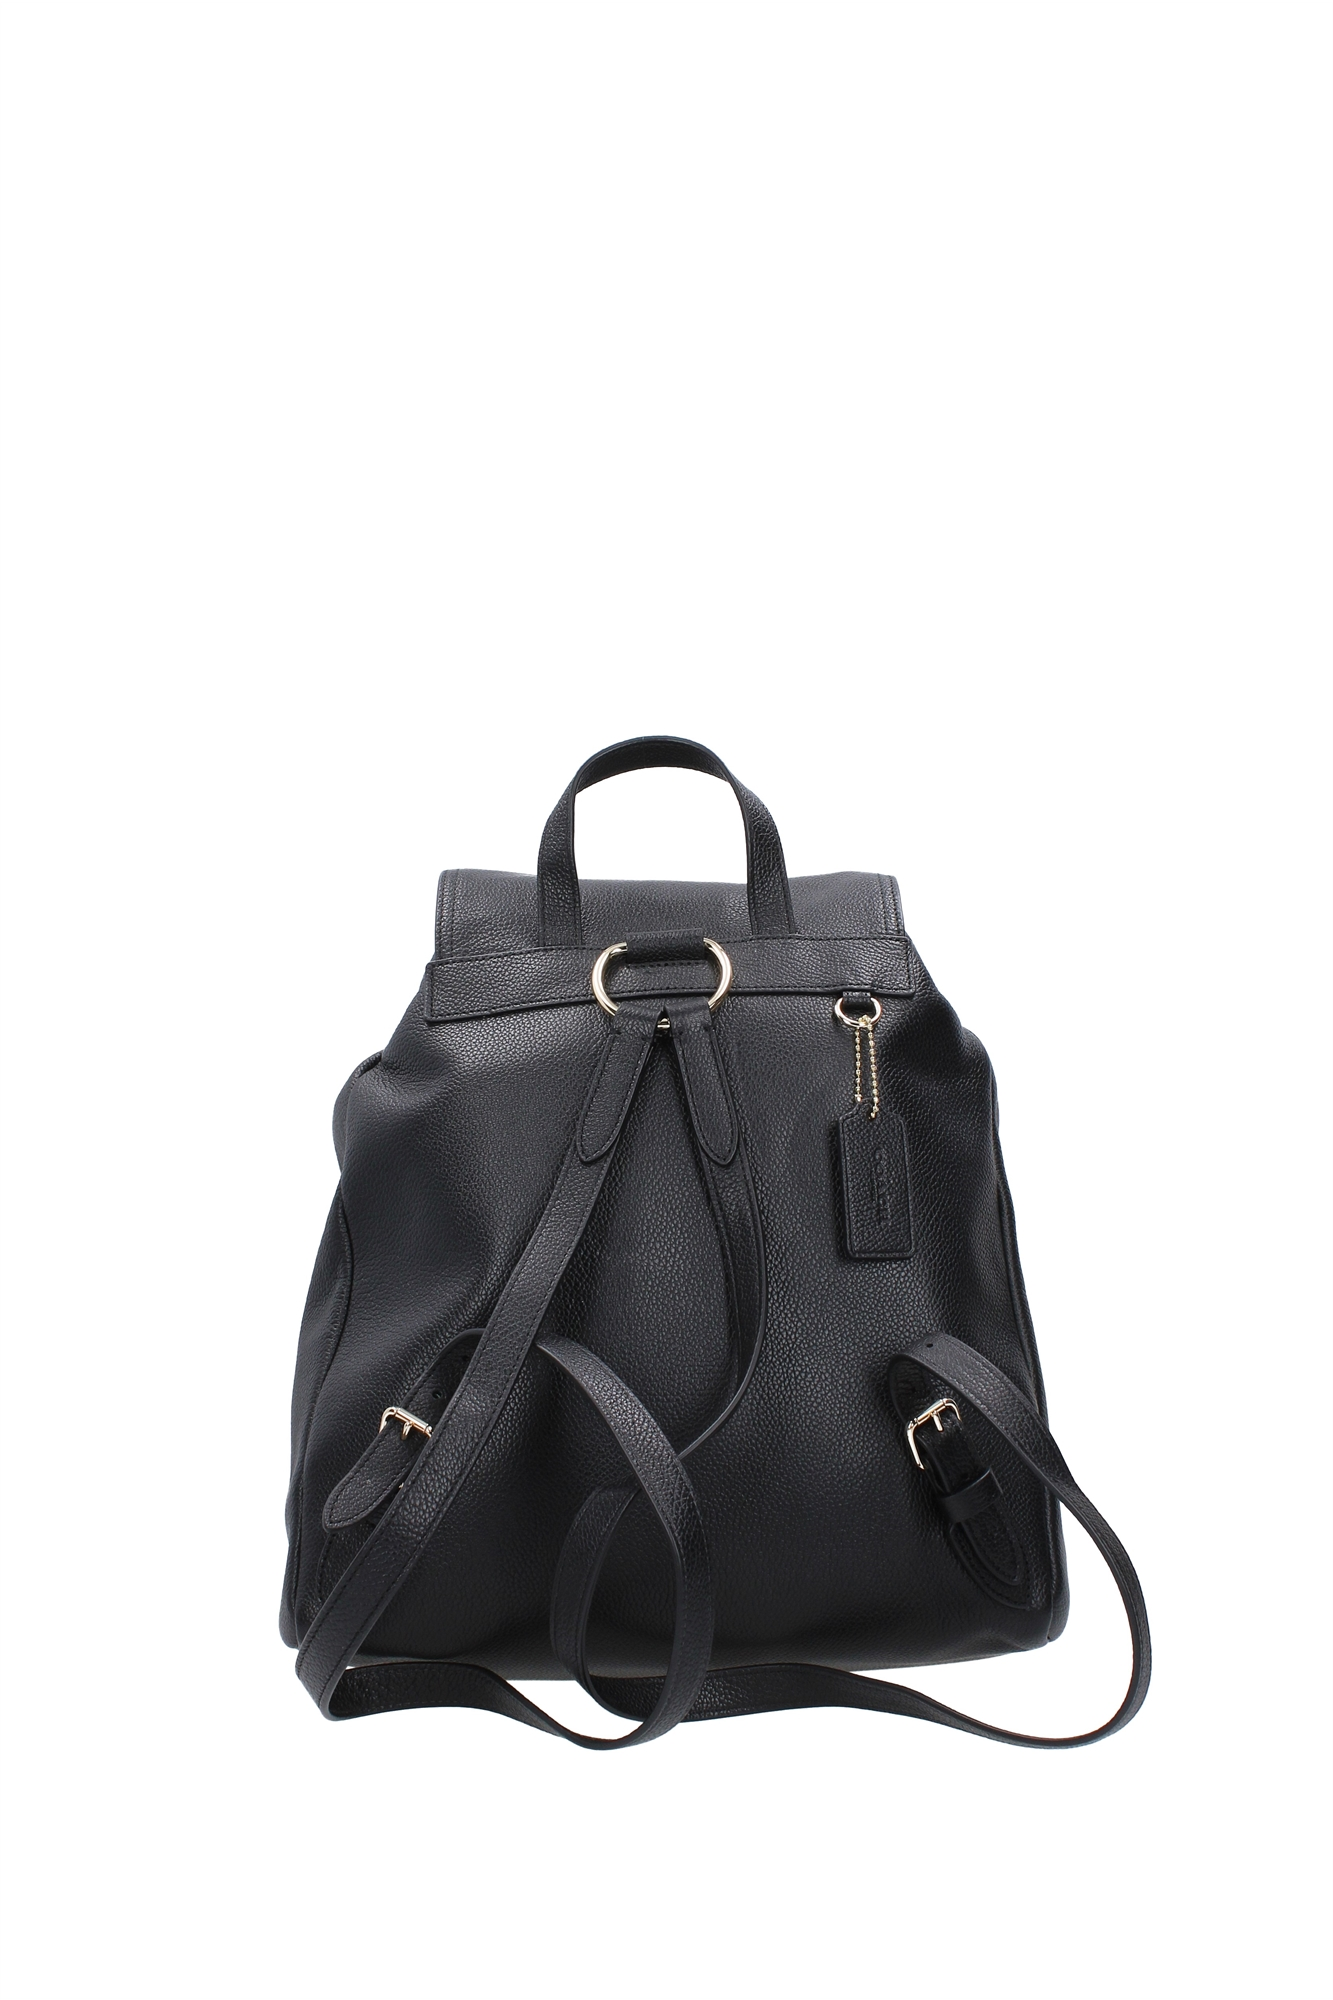 Bags Backpack Coach Women Leather Black 35303LIBLK | eBay